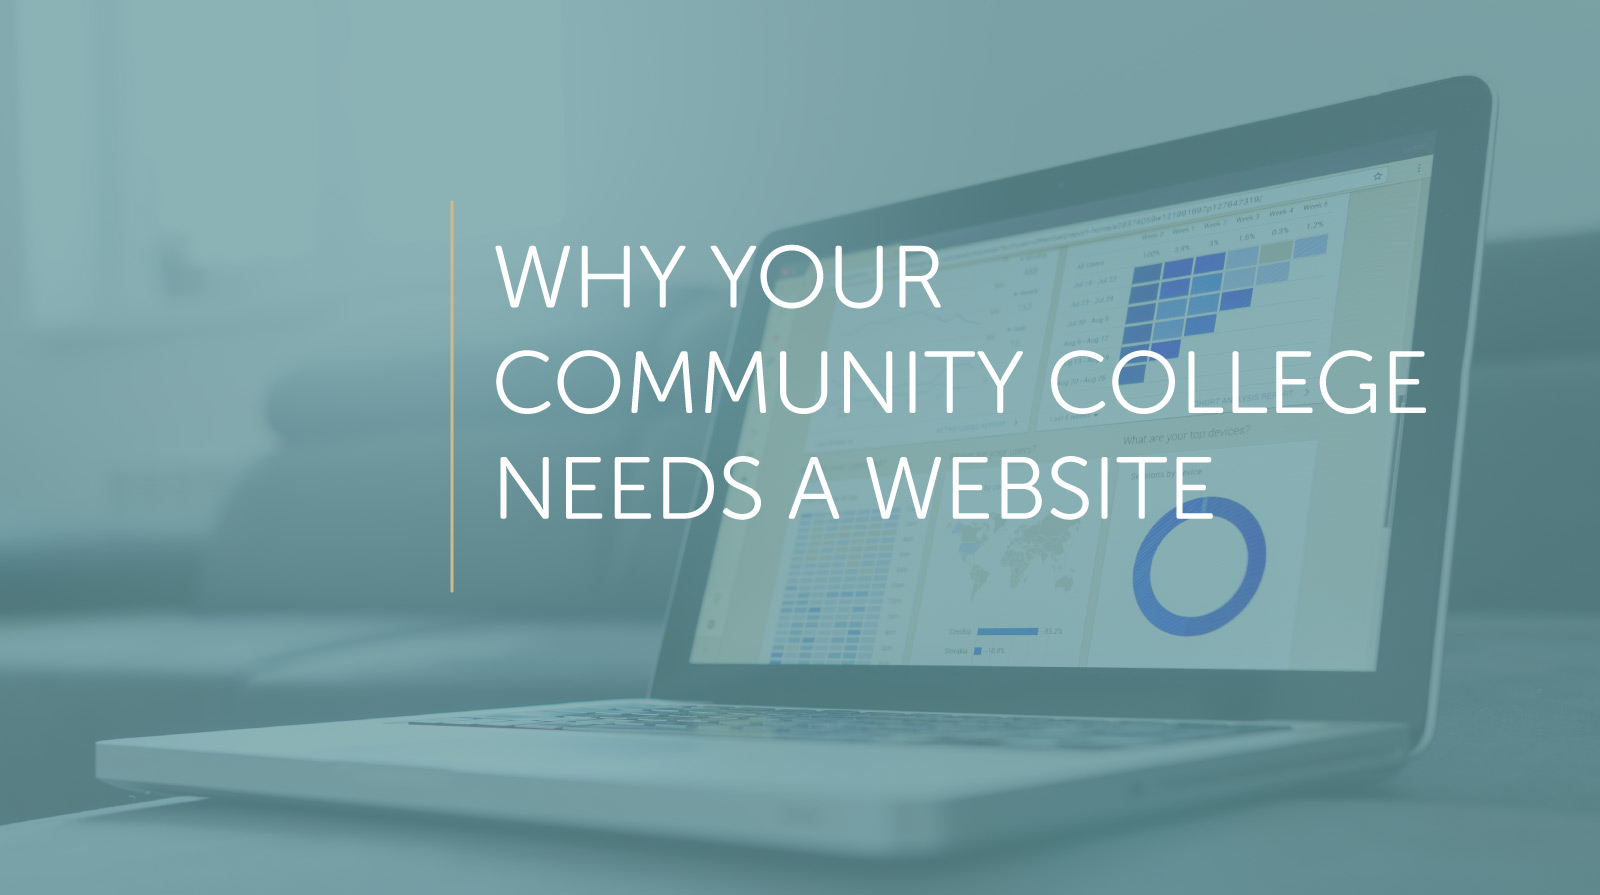 community college needs a website